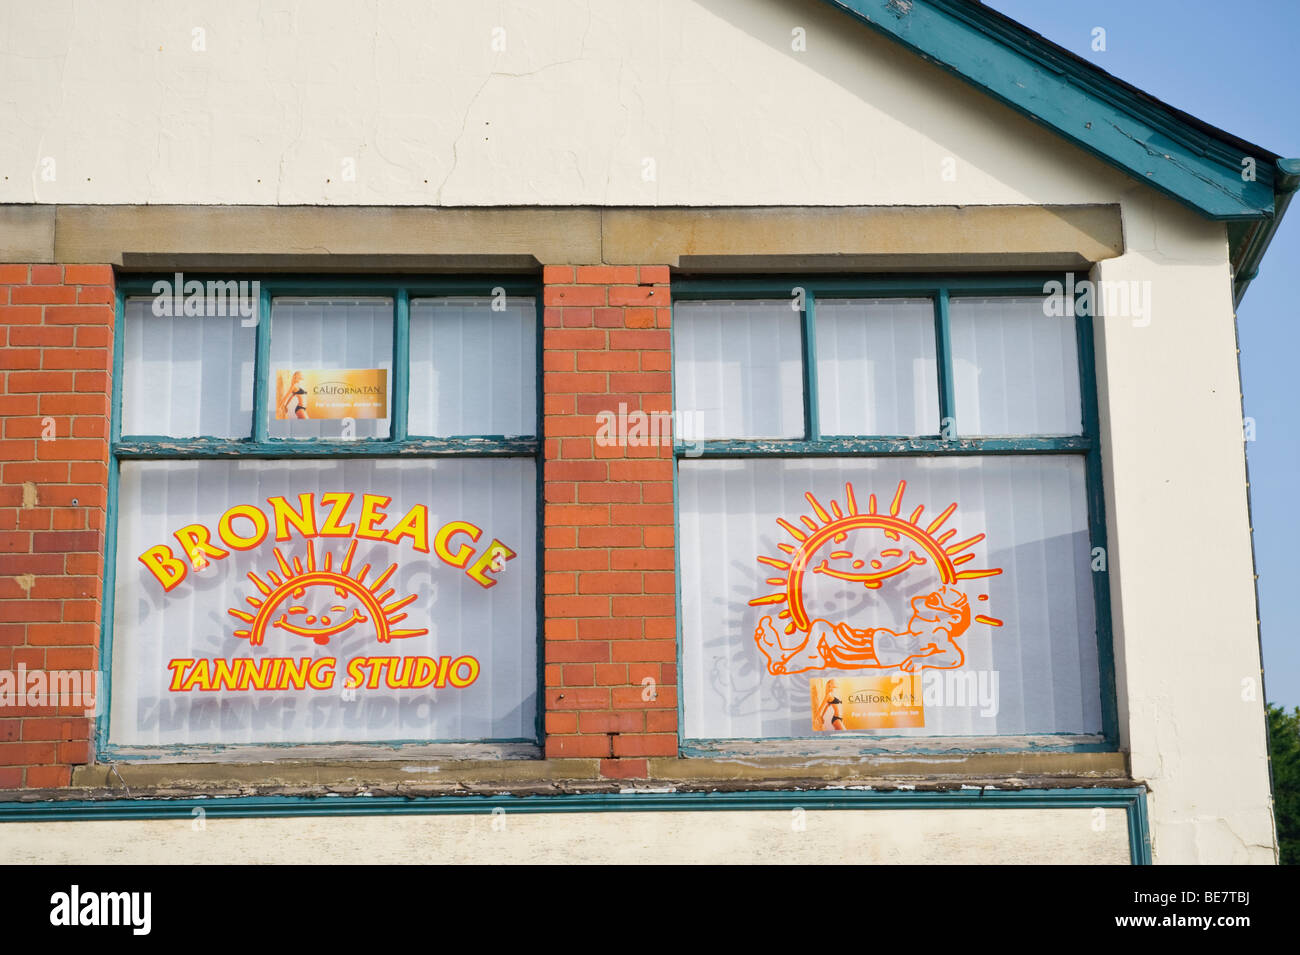 Exterior BRONZEAGE TANNING STUDIO in Abergavenny Monmouthshire South Wales UK - Stock Image